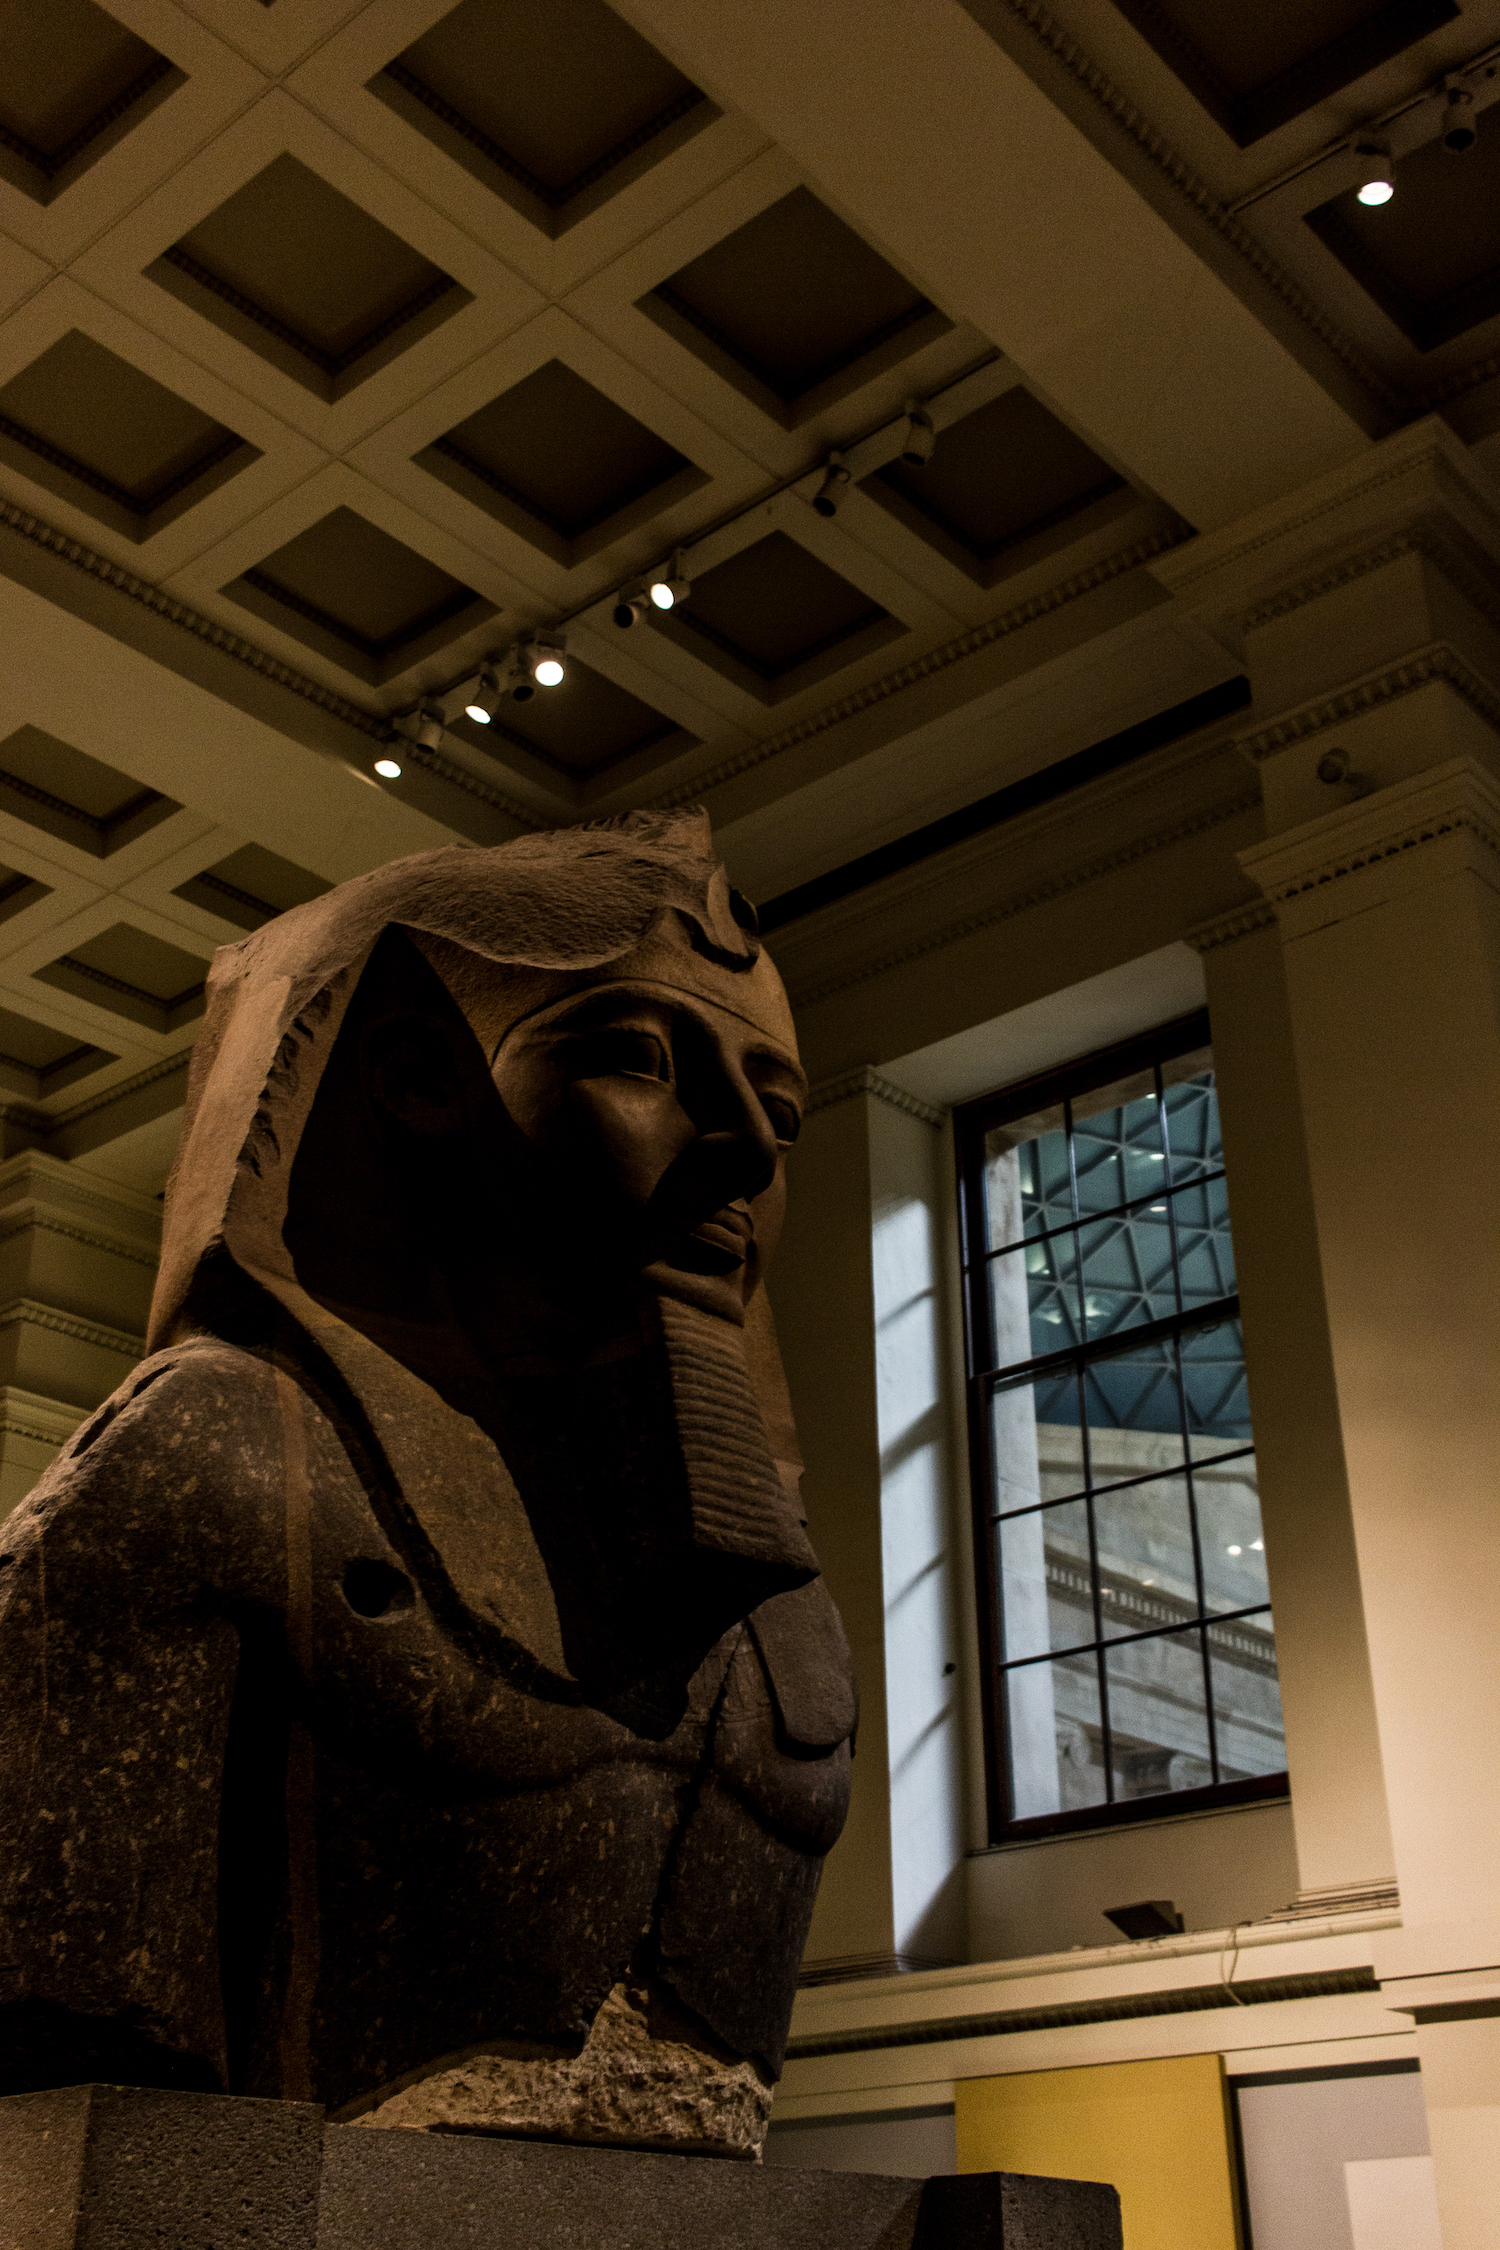 Professional Photography Stone Sculpture From Kemet Egypt Of King Ramses II In British Museum London